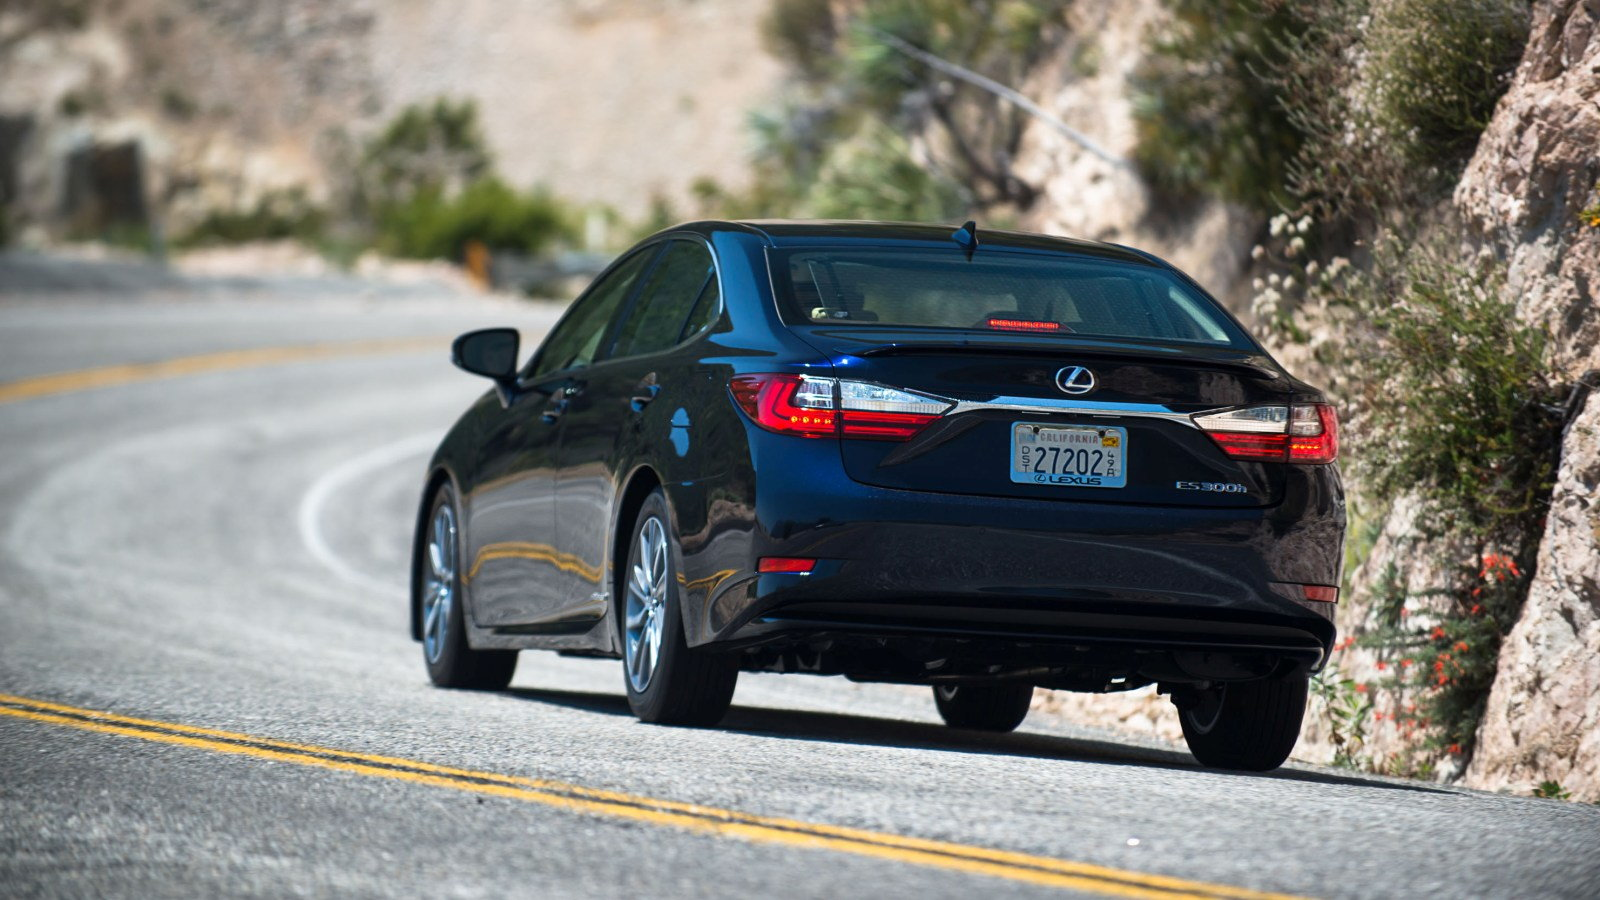 A Visit With the Lexus ES 300h Hybrid